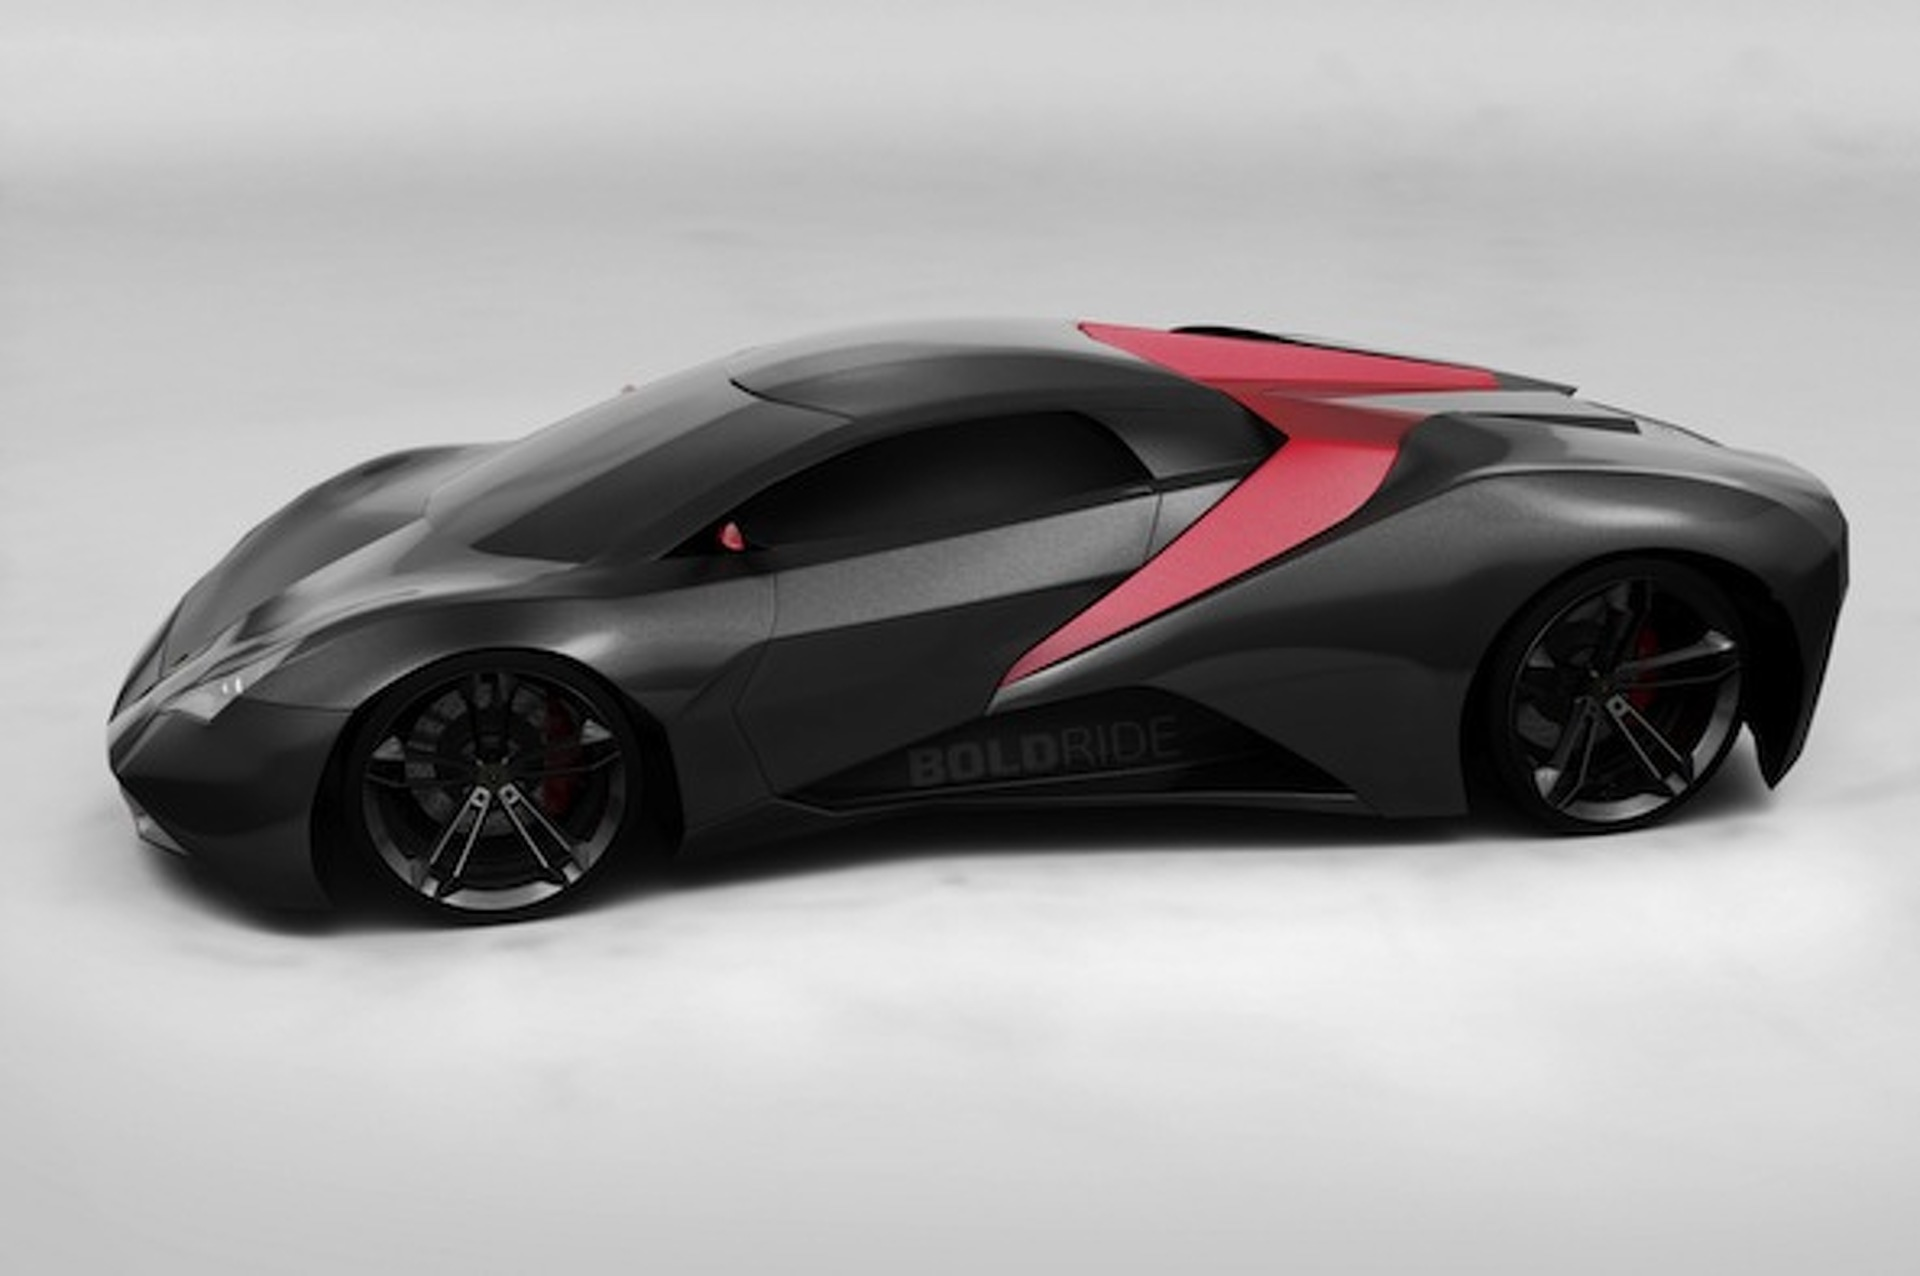 Lamborghini Dynavonto: An Aerodynamic Force of Engineering